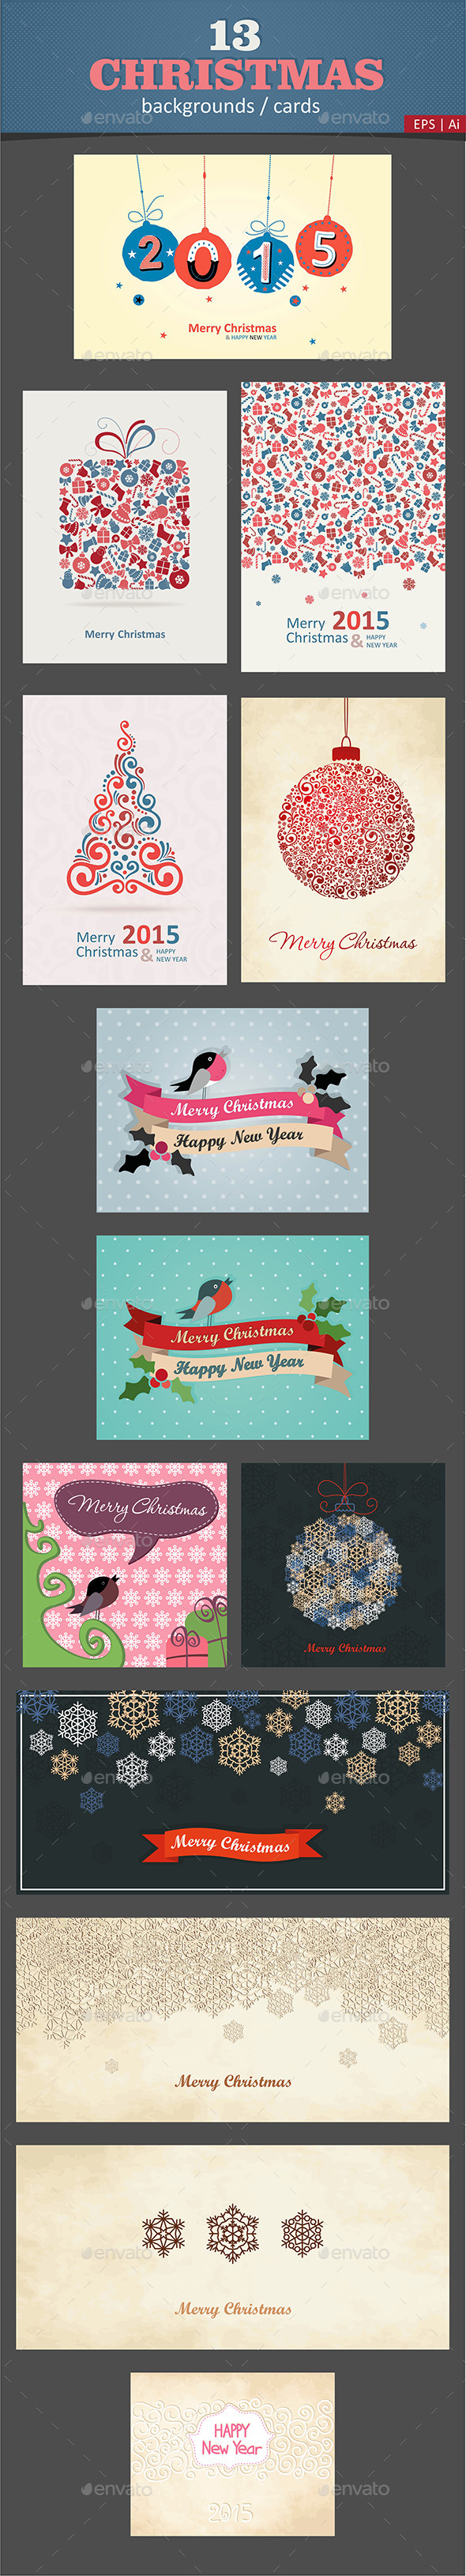 13 Christmas Cards / Backgrounds Vector